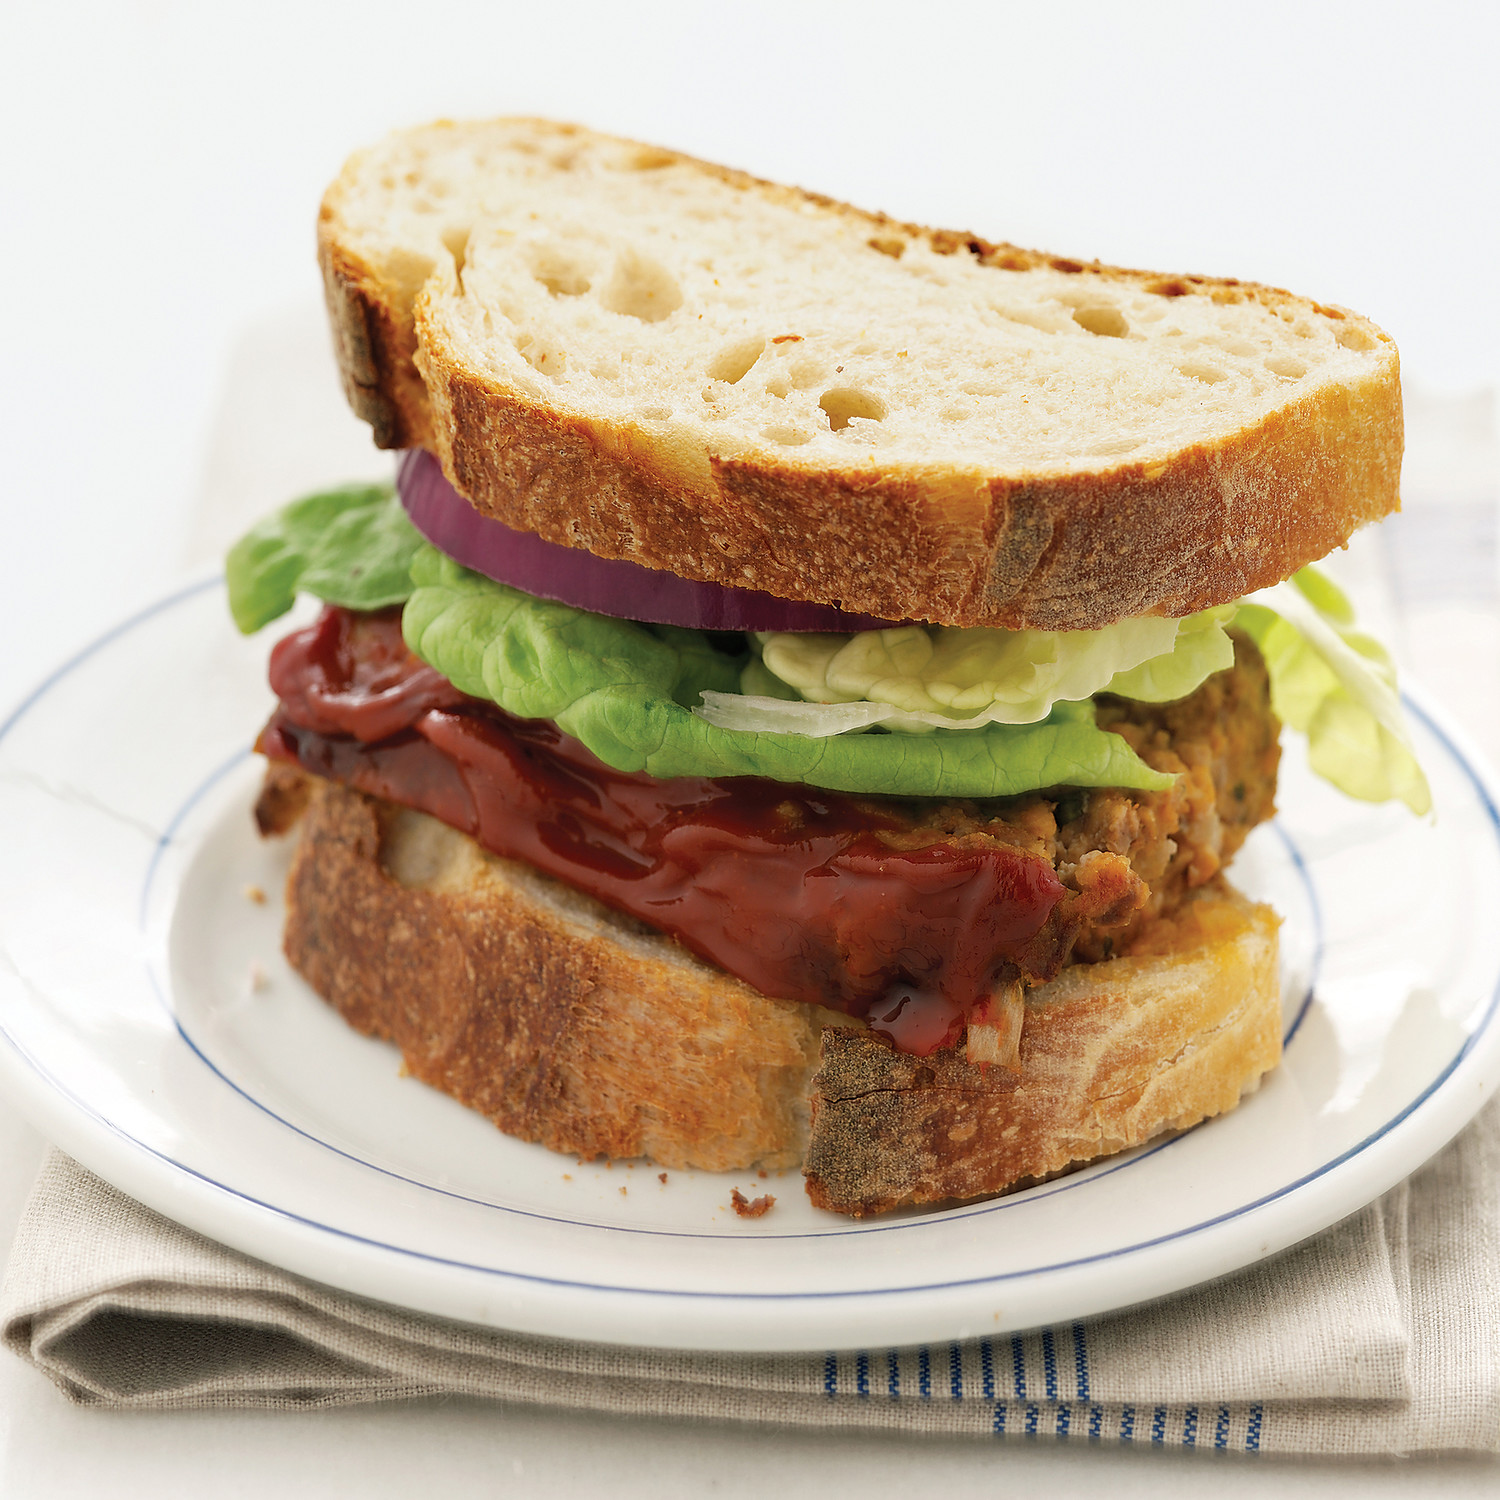 terrific better homes and gardens meatloaf. Pinterest  Meatloaf Sandwiches Mini Honey Mustard Meatloaves with Roasted Potatoes